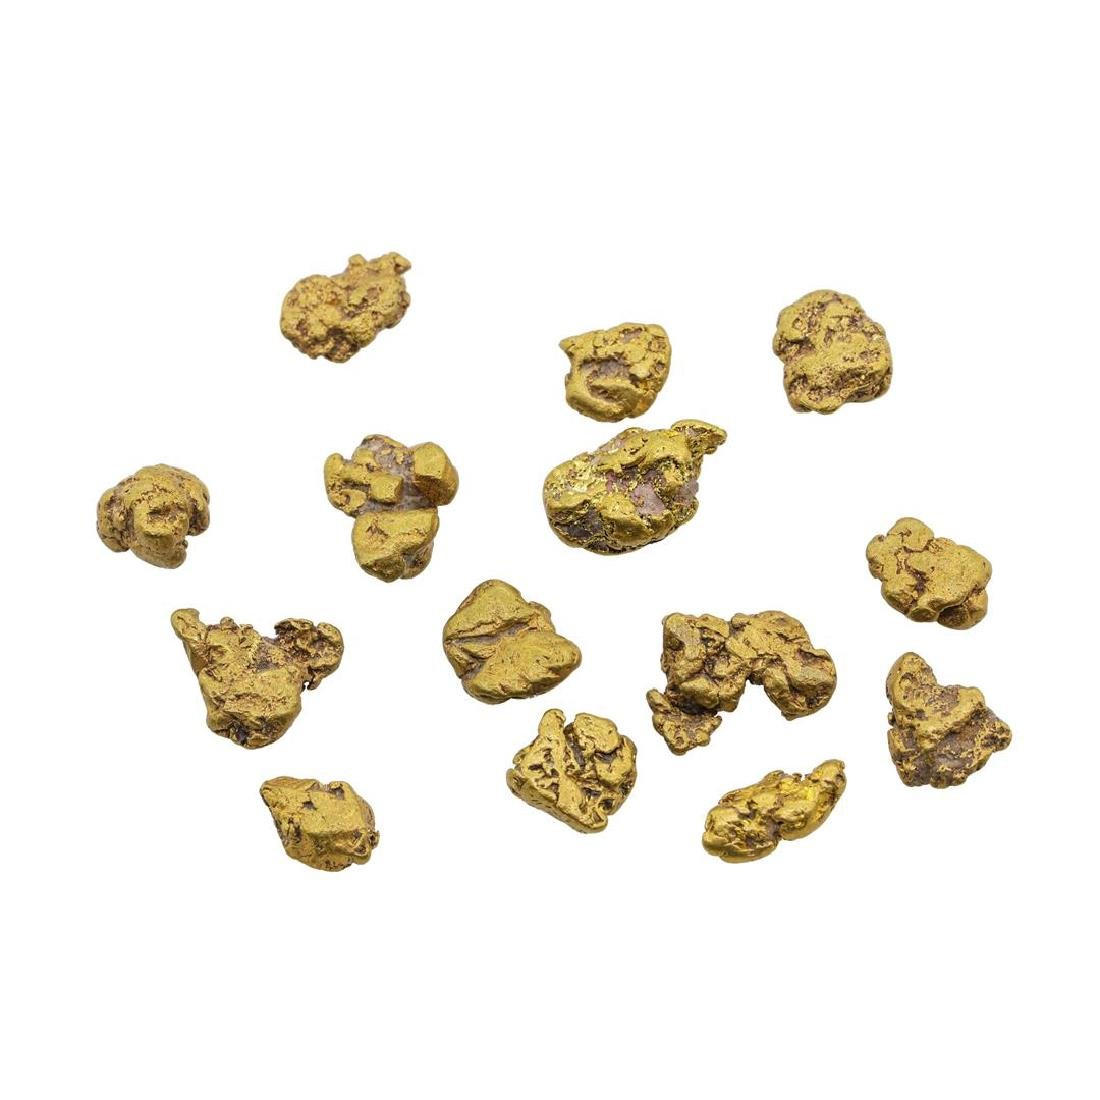 Lot of Gold Nuggets 5.7 grams Total Weight - 2